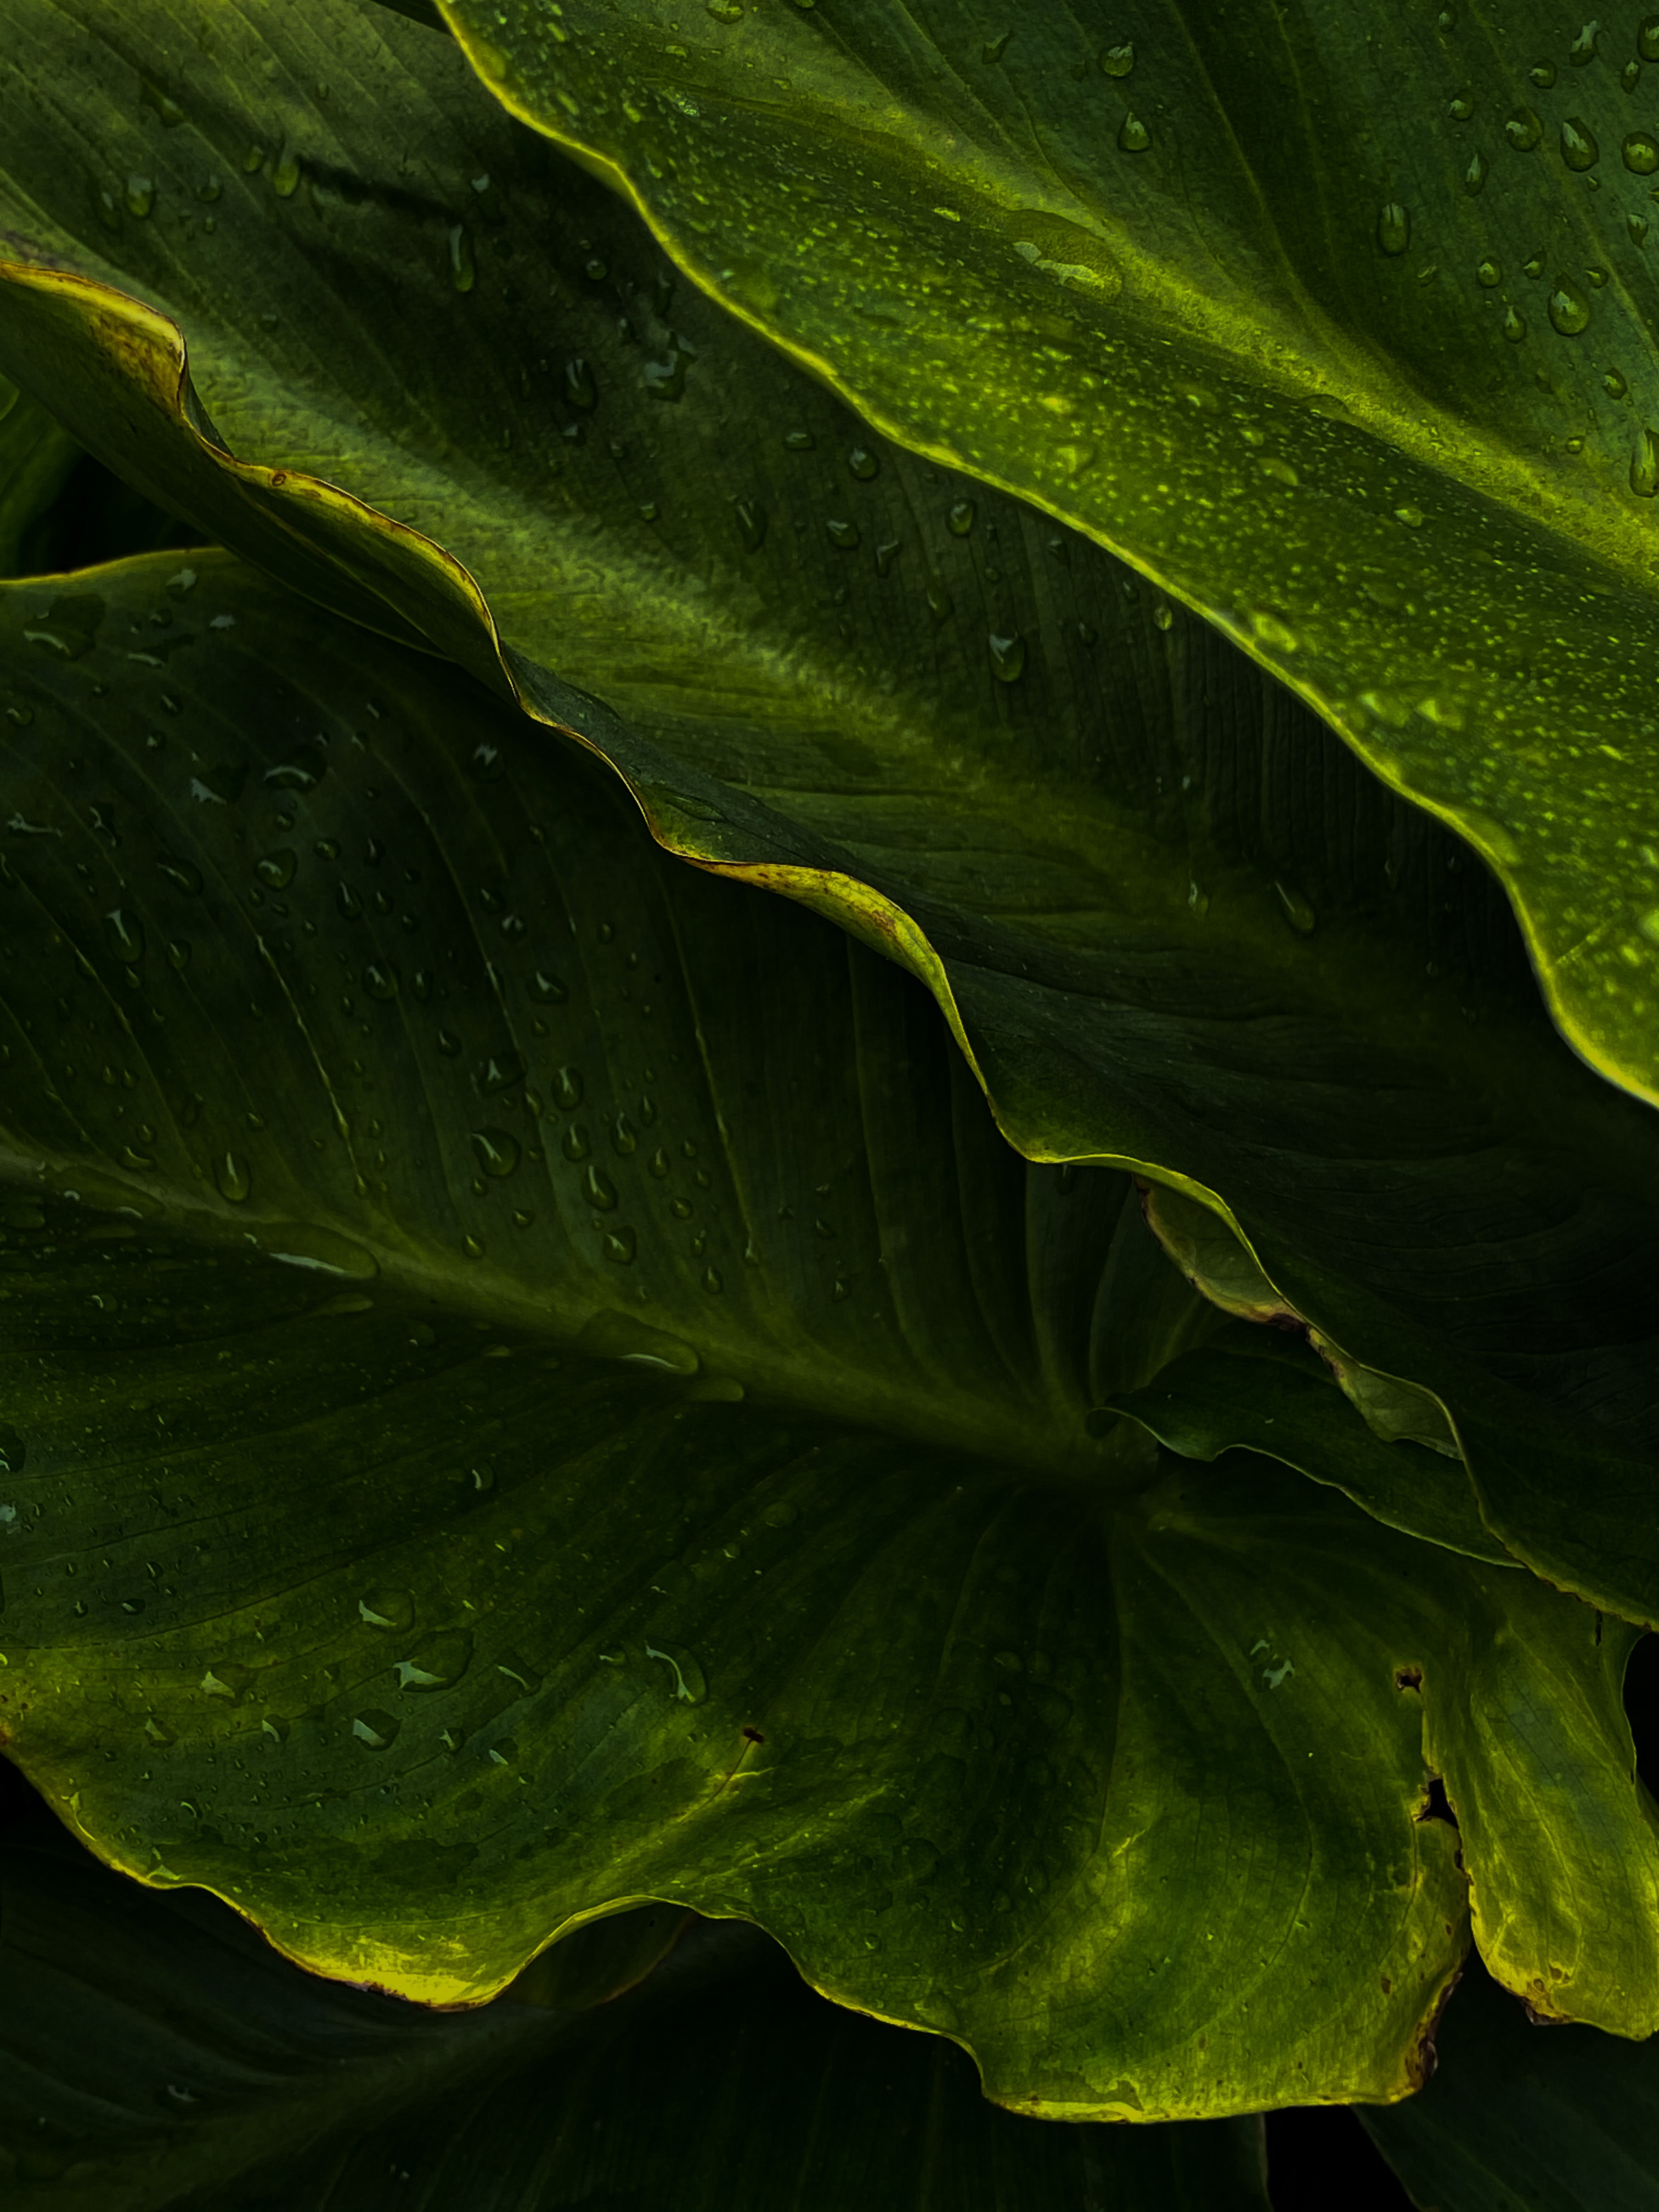 80062 download wallpaper Macro, Leaves, Drops, Wet, Tropics screensavers and pictures for free